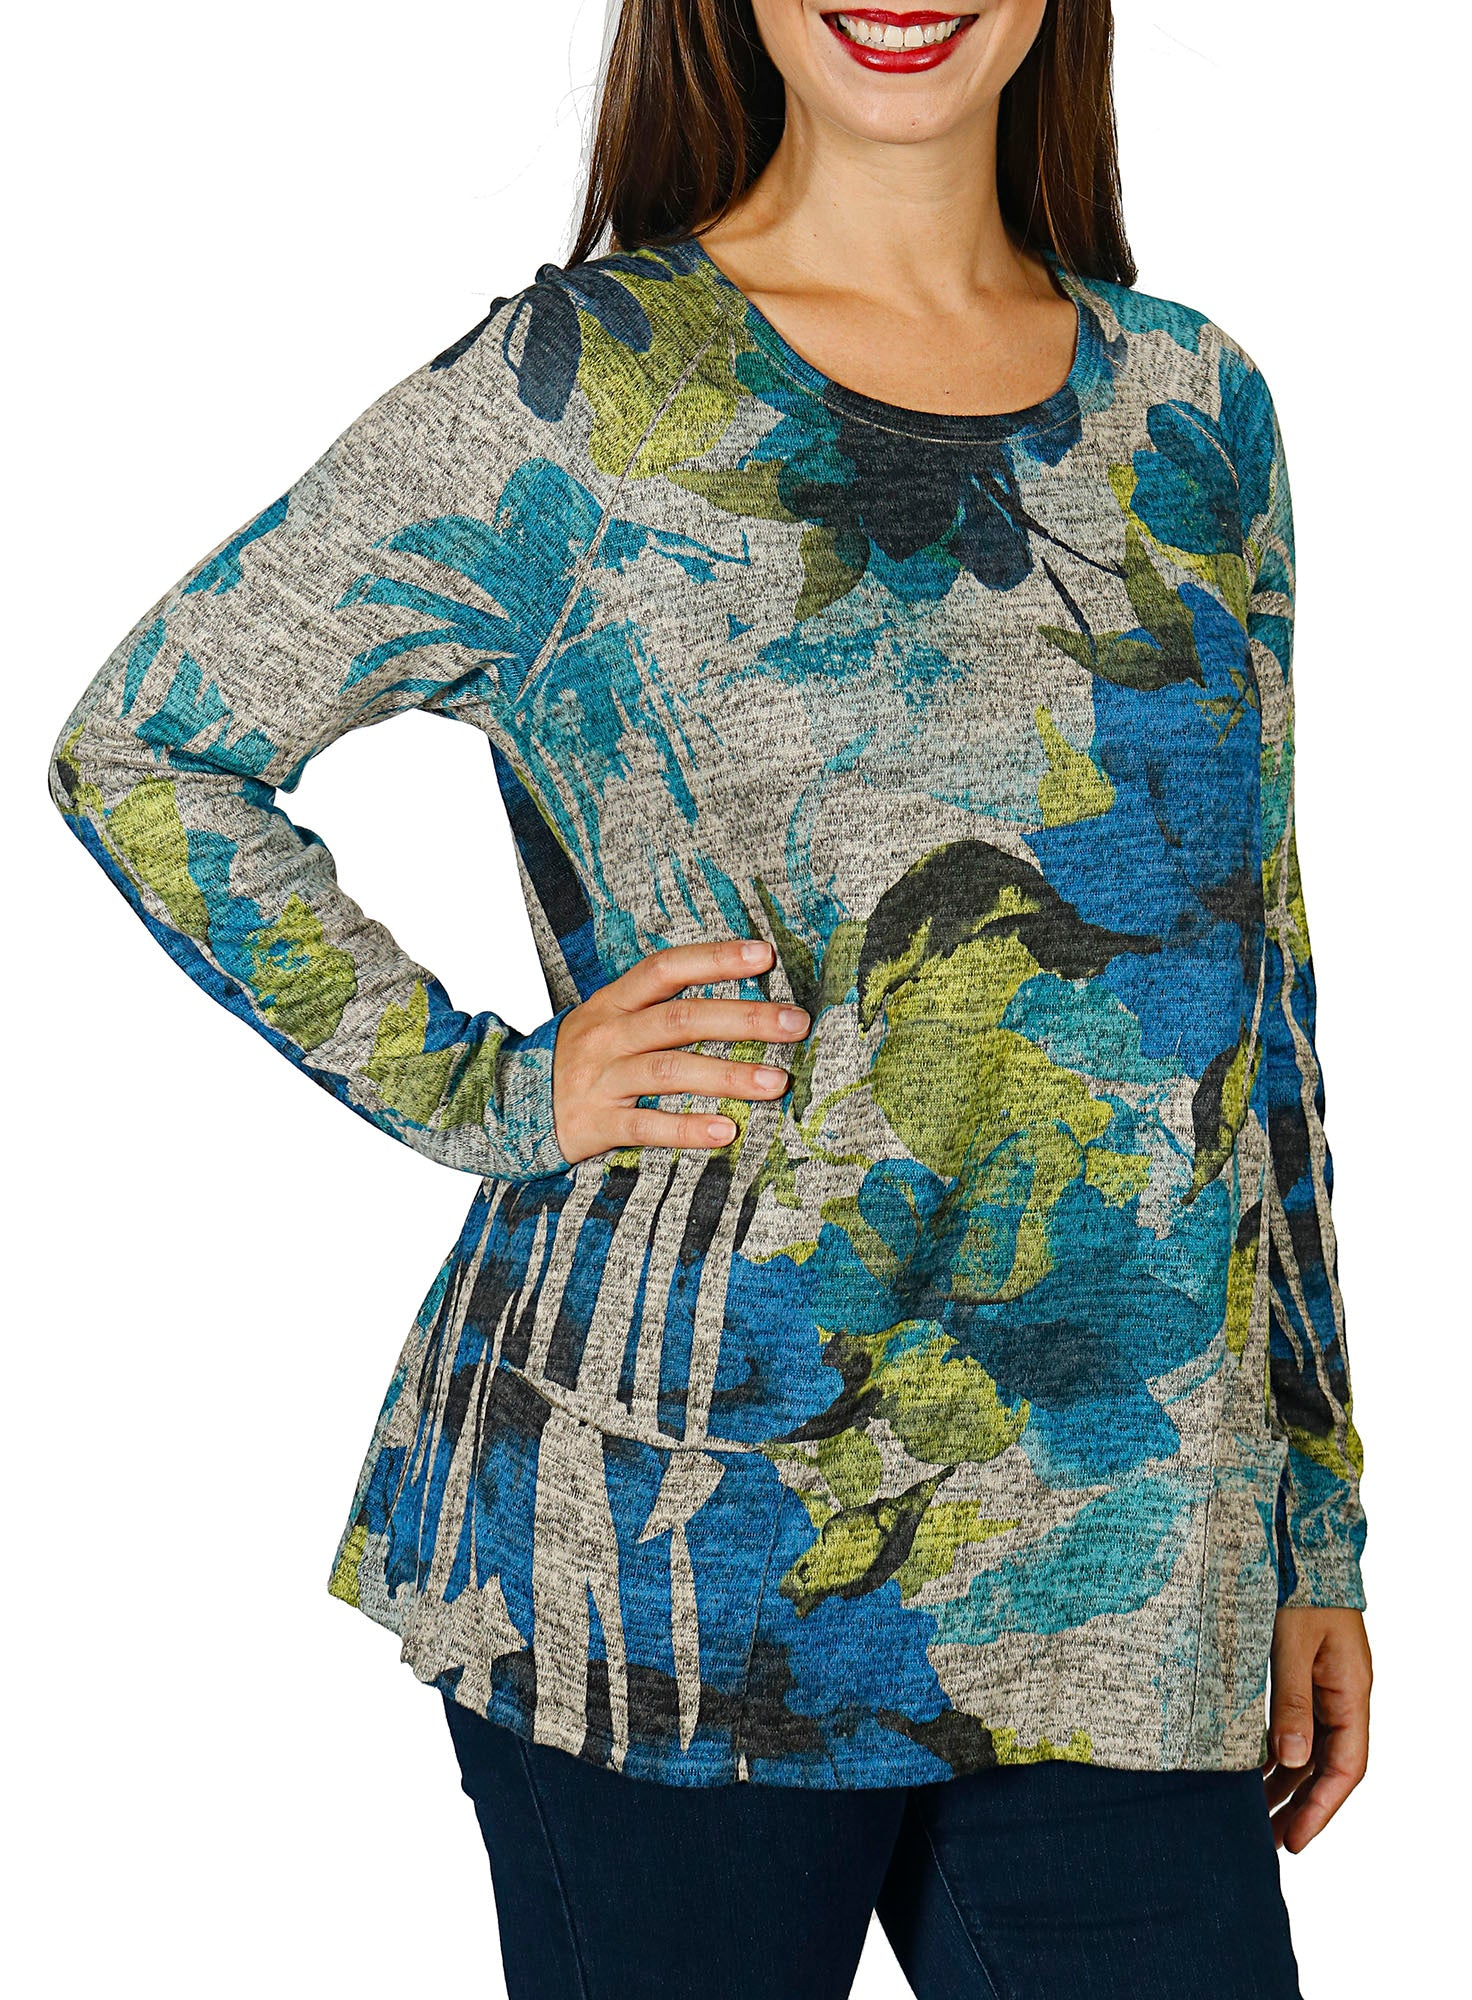 Impulse California Women's Floral Patch Pocket Sweater